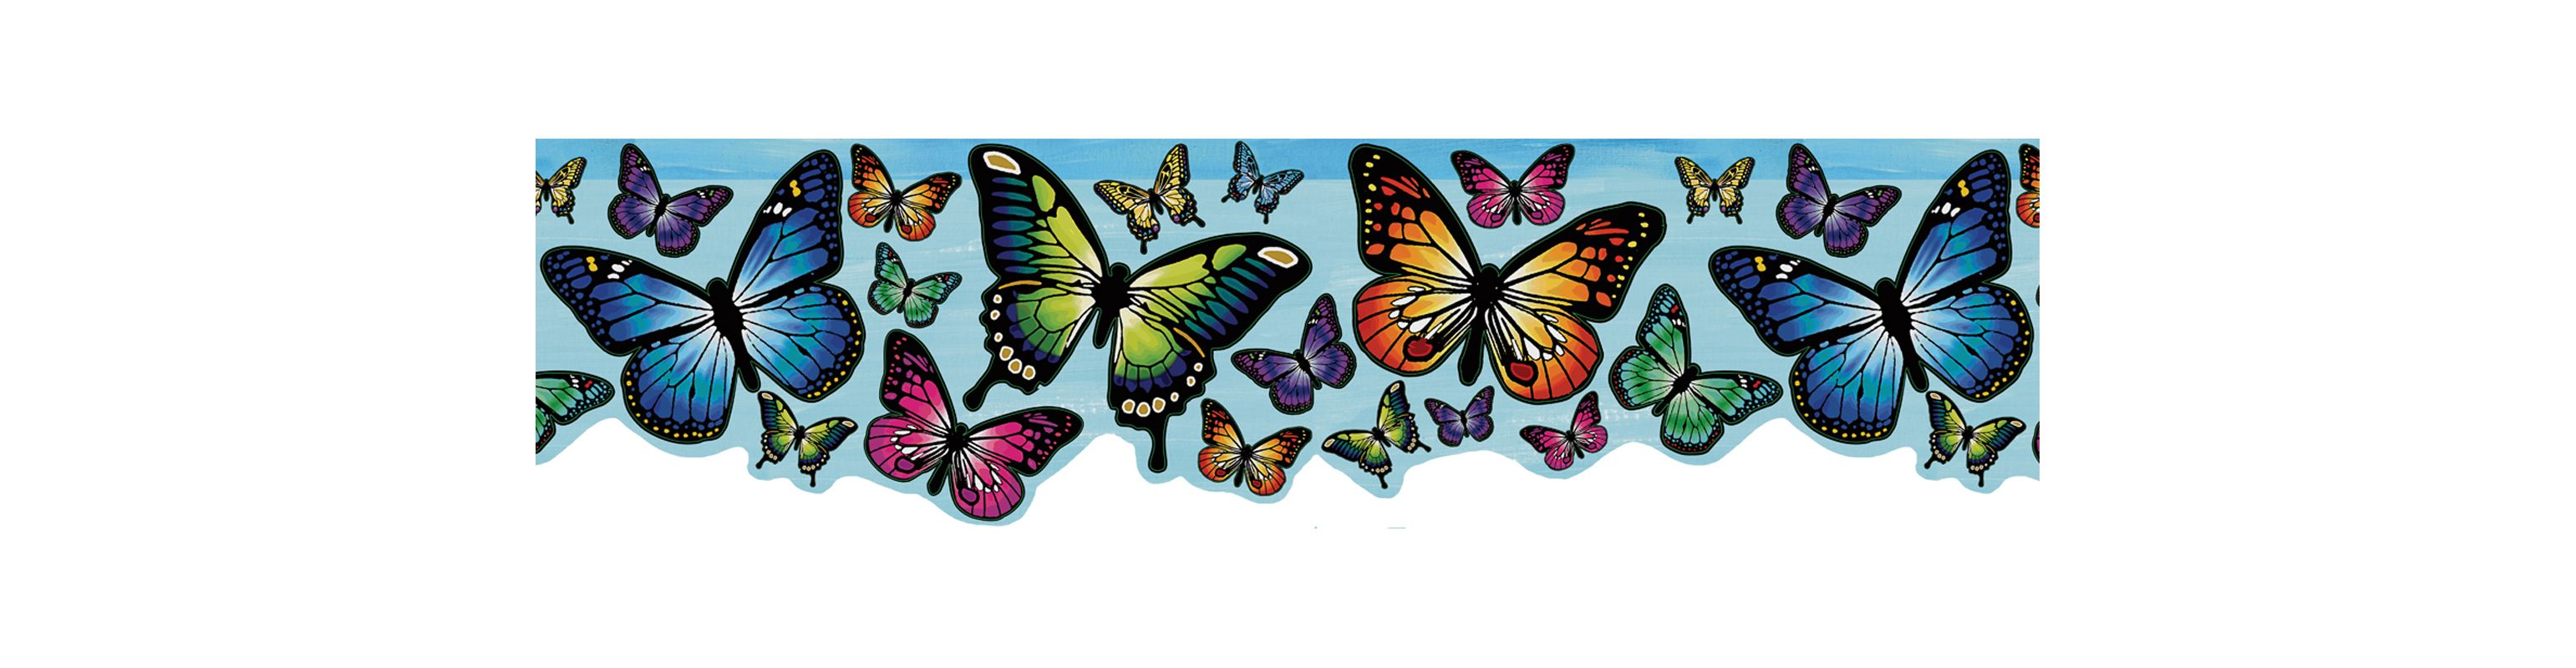 Brewster 443B97626 Butterfly Magic Border Blue Butterfly Border Blue